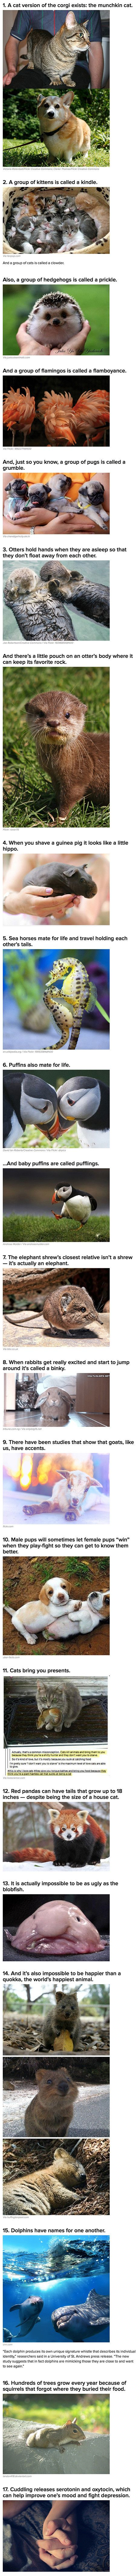 We have rounded up some geeky animal facts and stories you never knew about.: Fun Facts, Interesting Animal Facts, Animals Nature Travel, Facts Stuff, Random Facts, Awesome Facts, Cat Brings